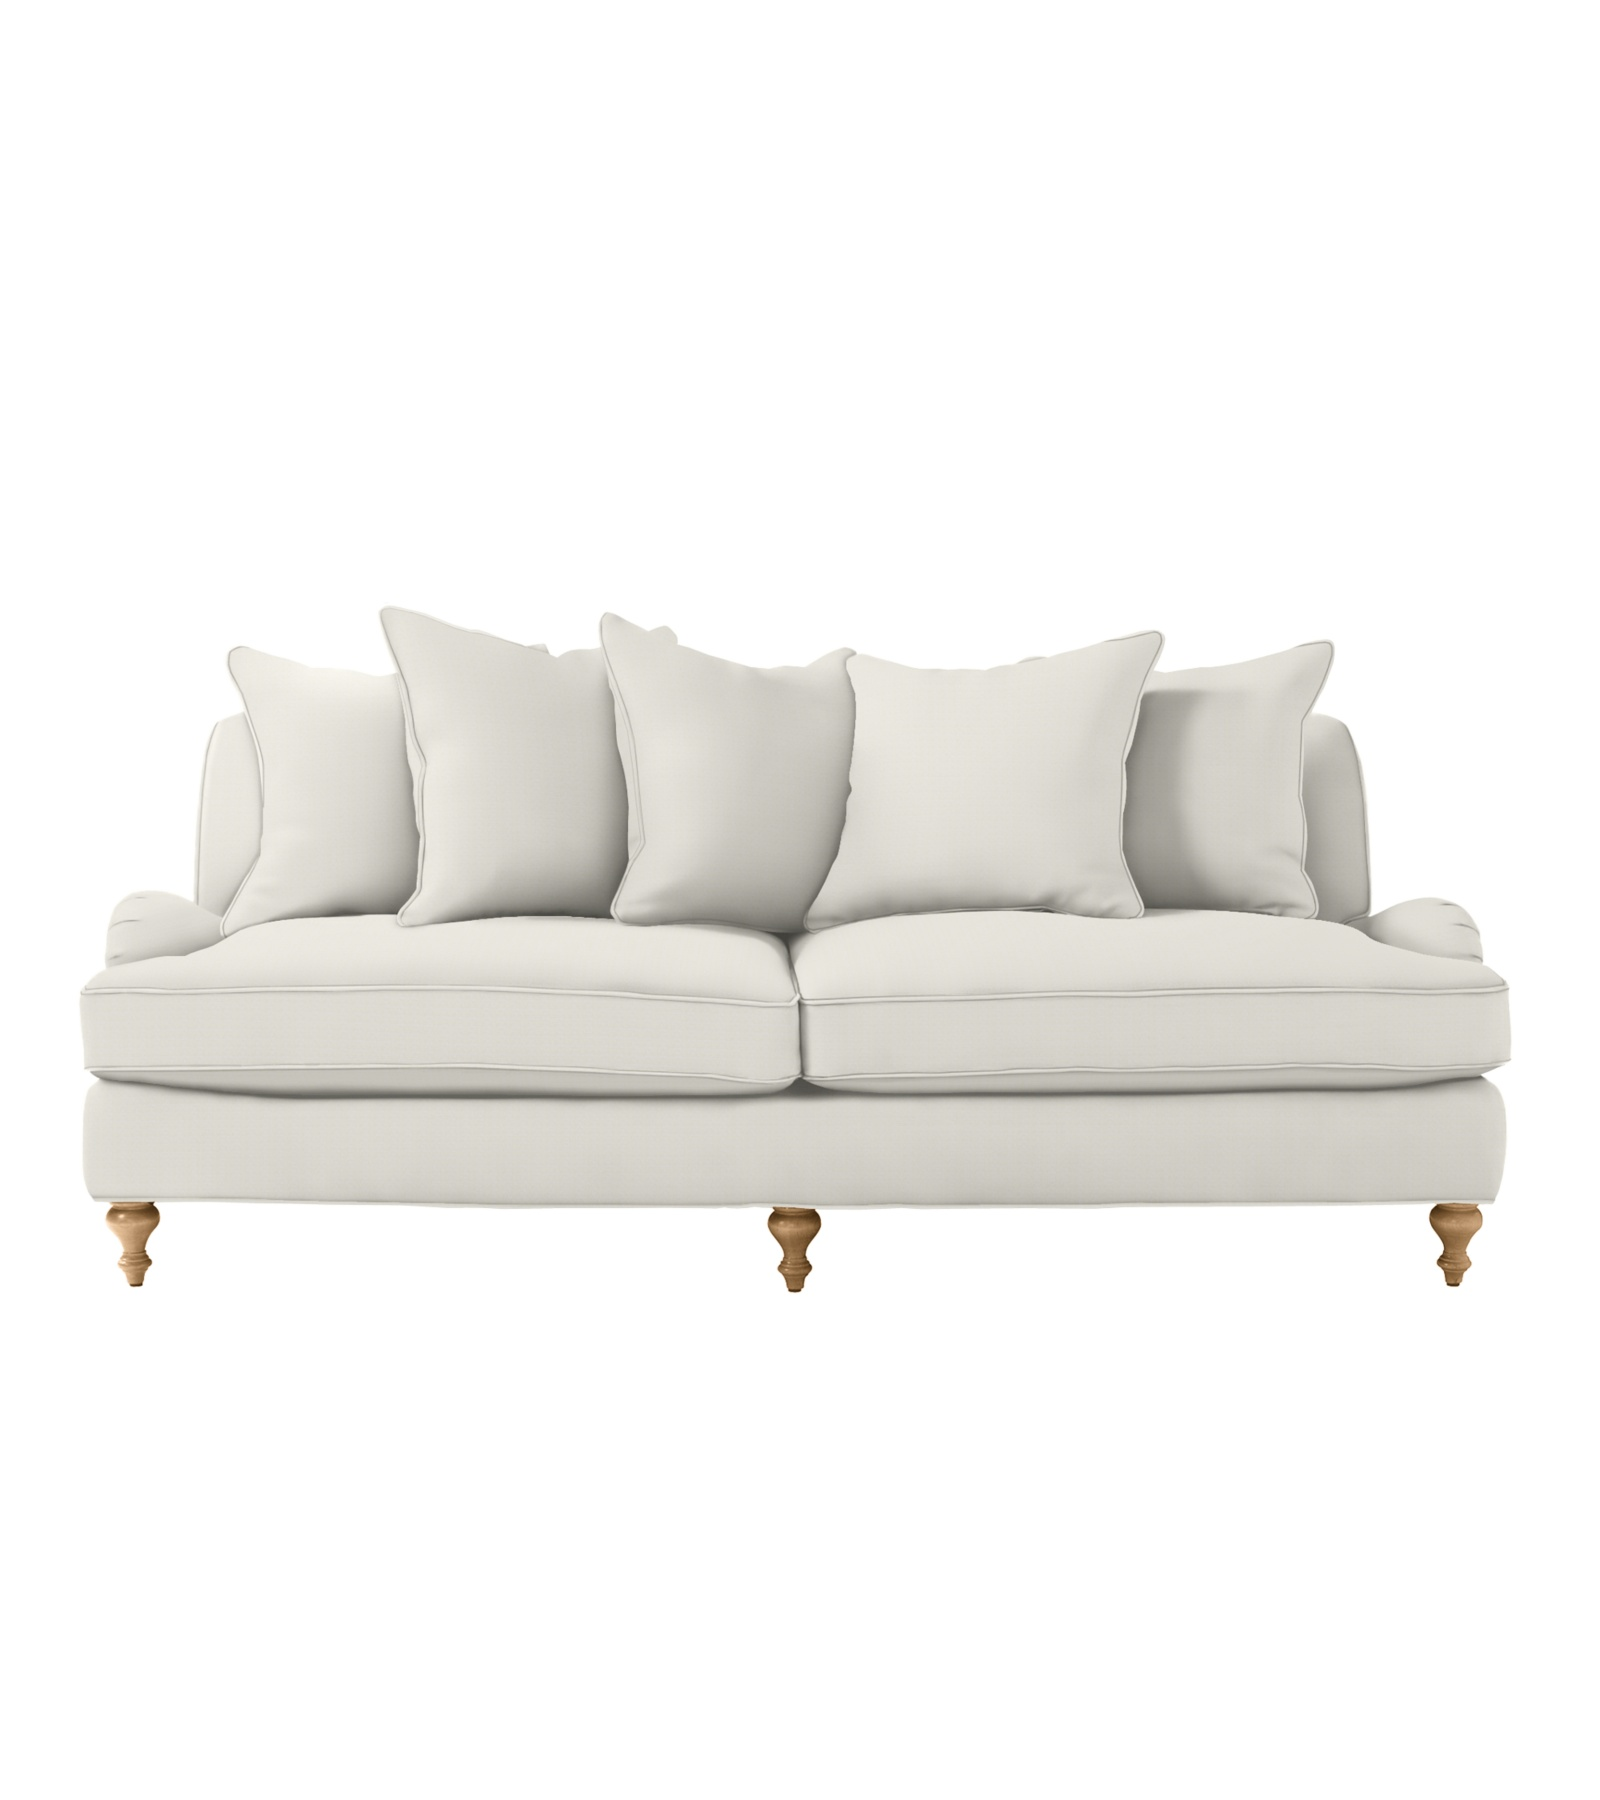 Timeless Neutral Sofas - Serena and Lily | Miramar Sofa